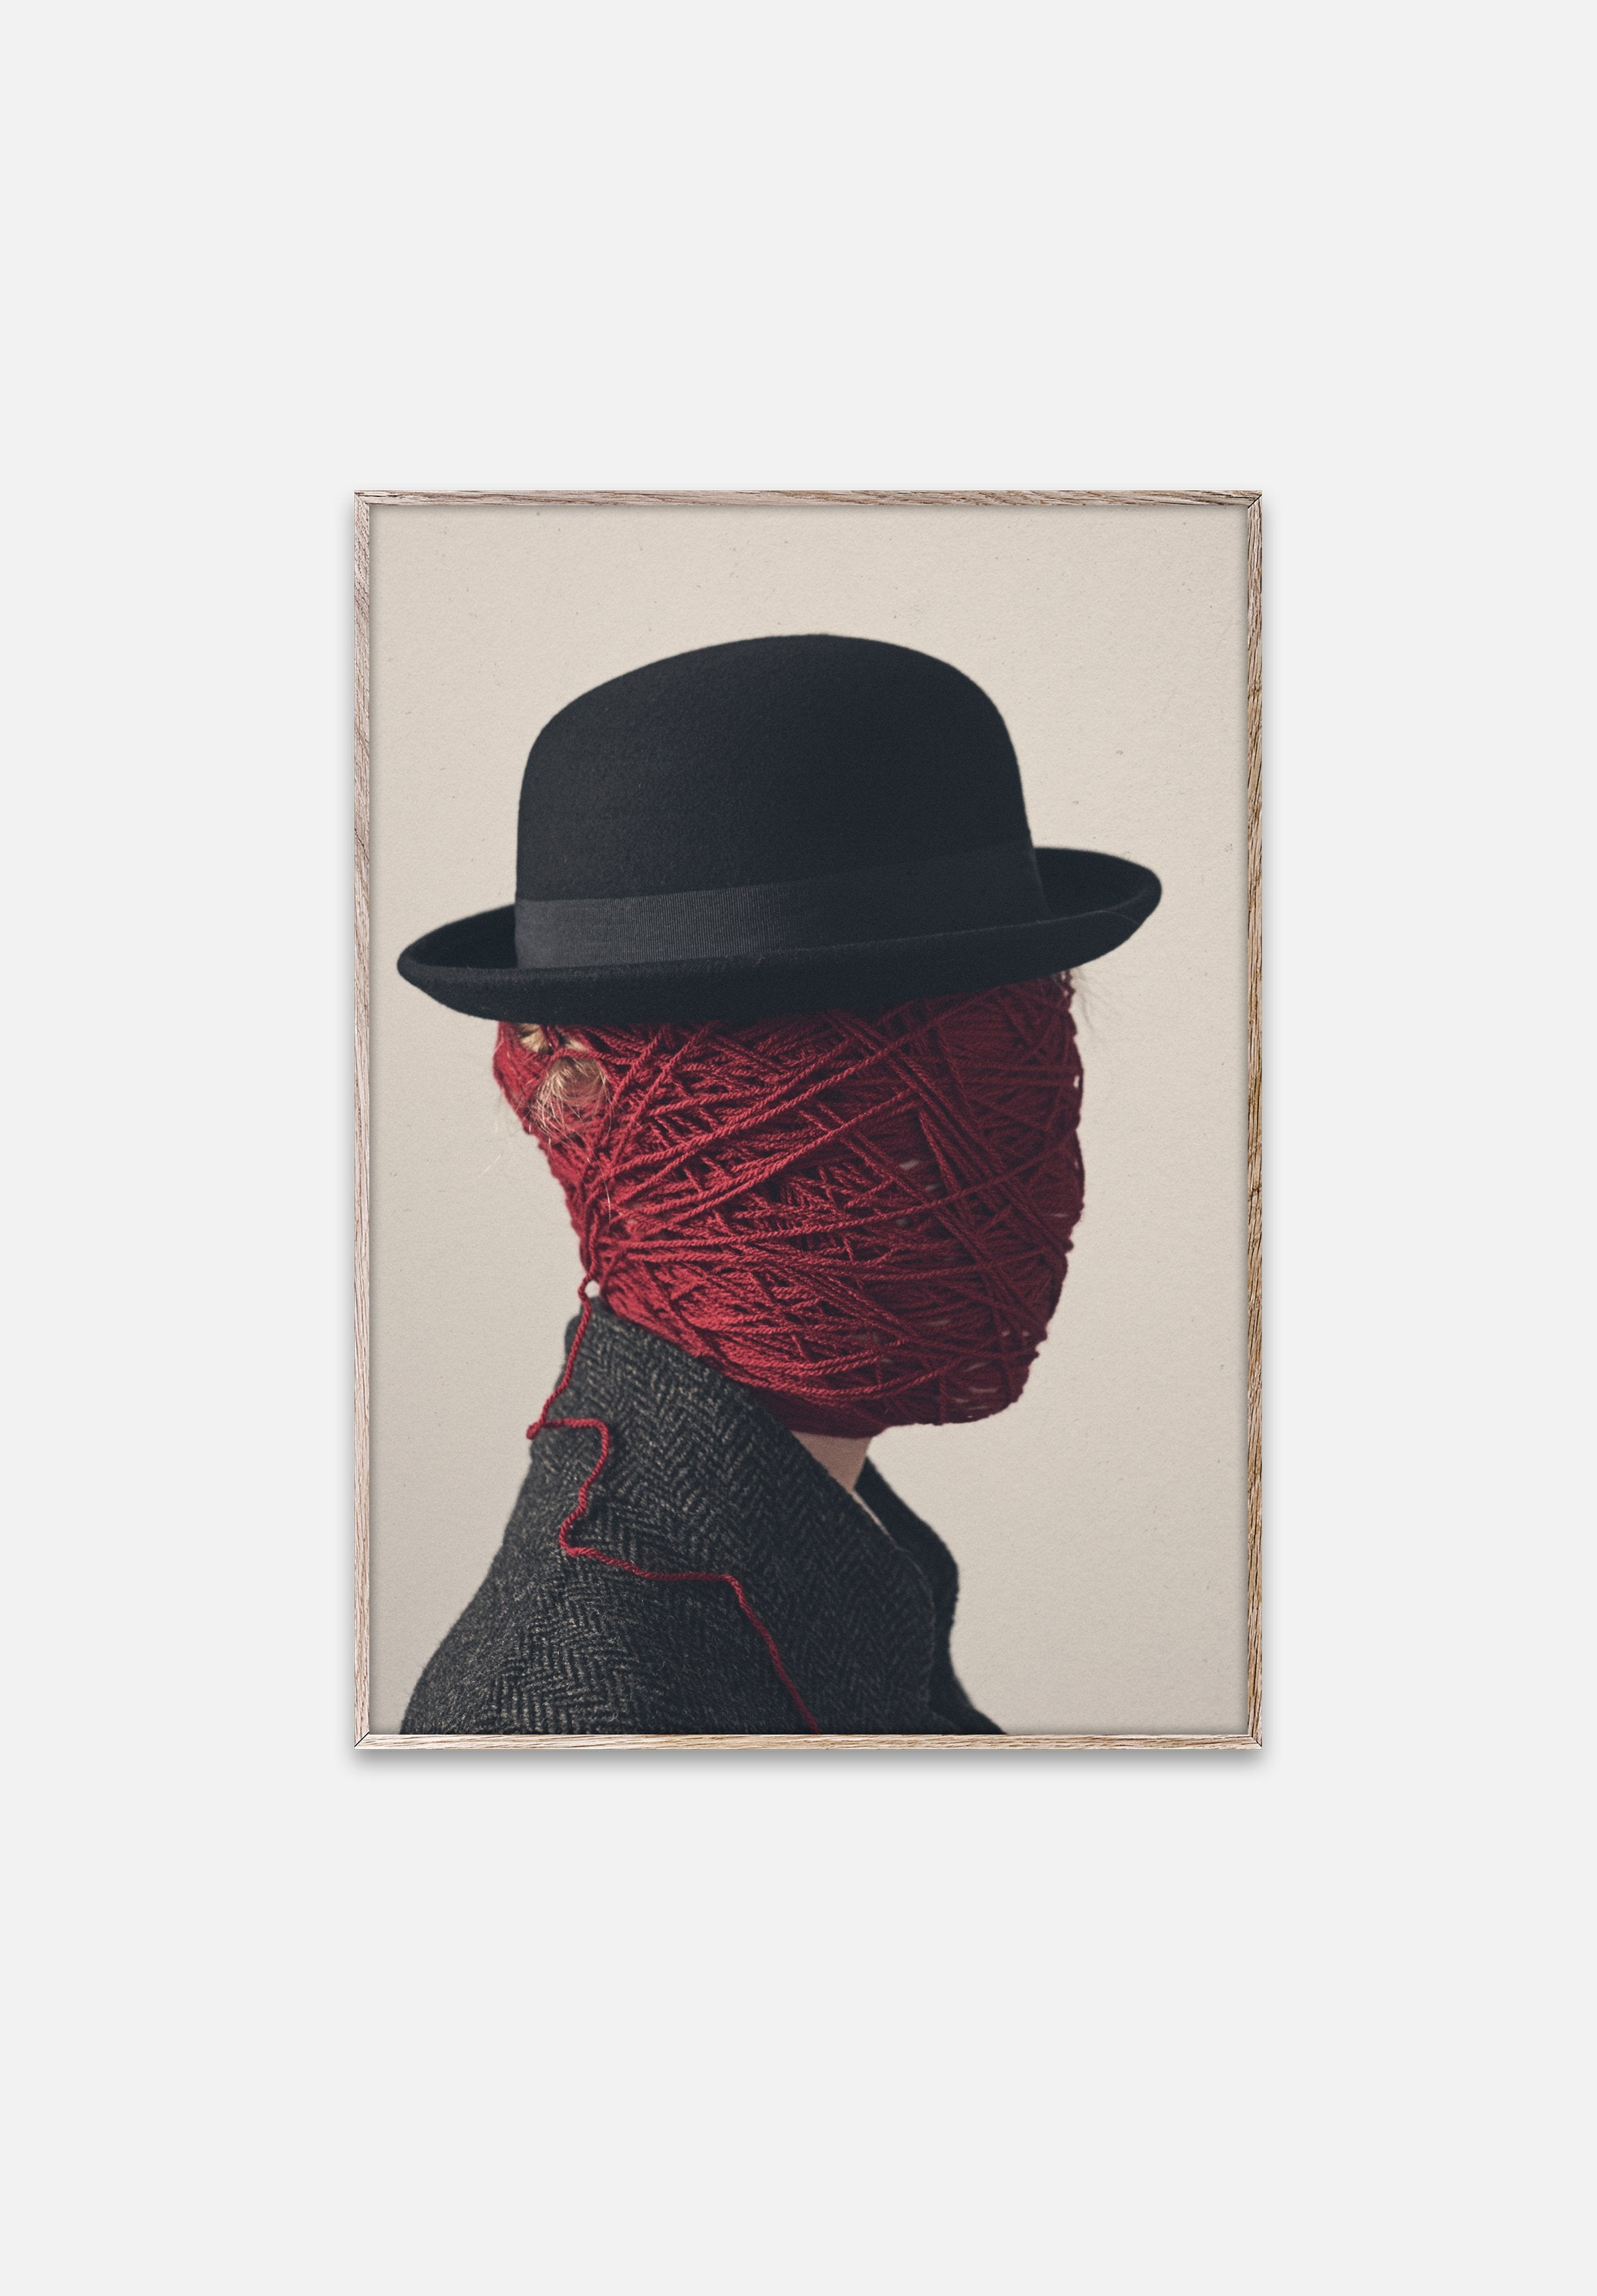 Strings-Henrik Bülow-Paper Collective-30x40cm-Average